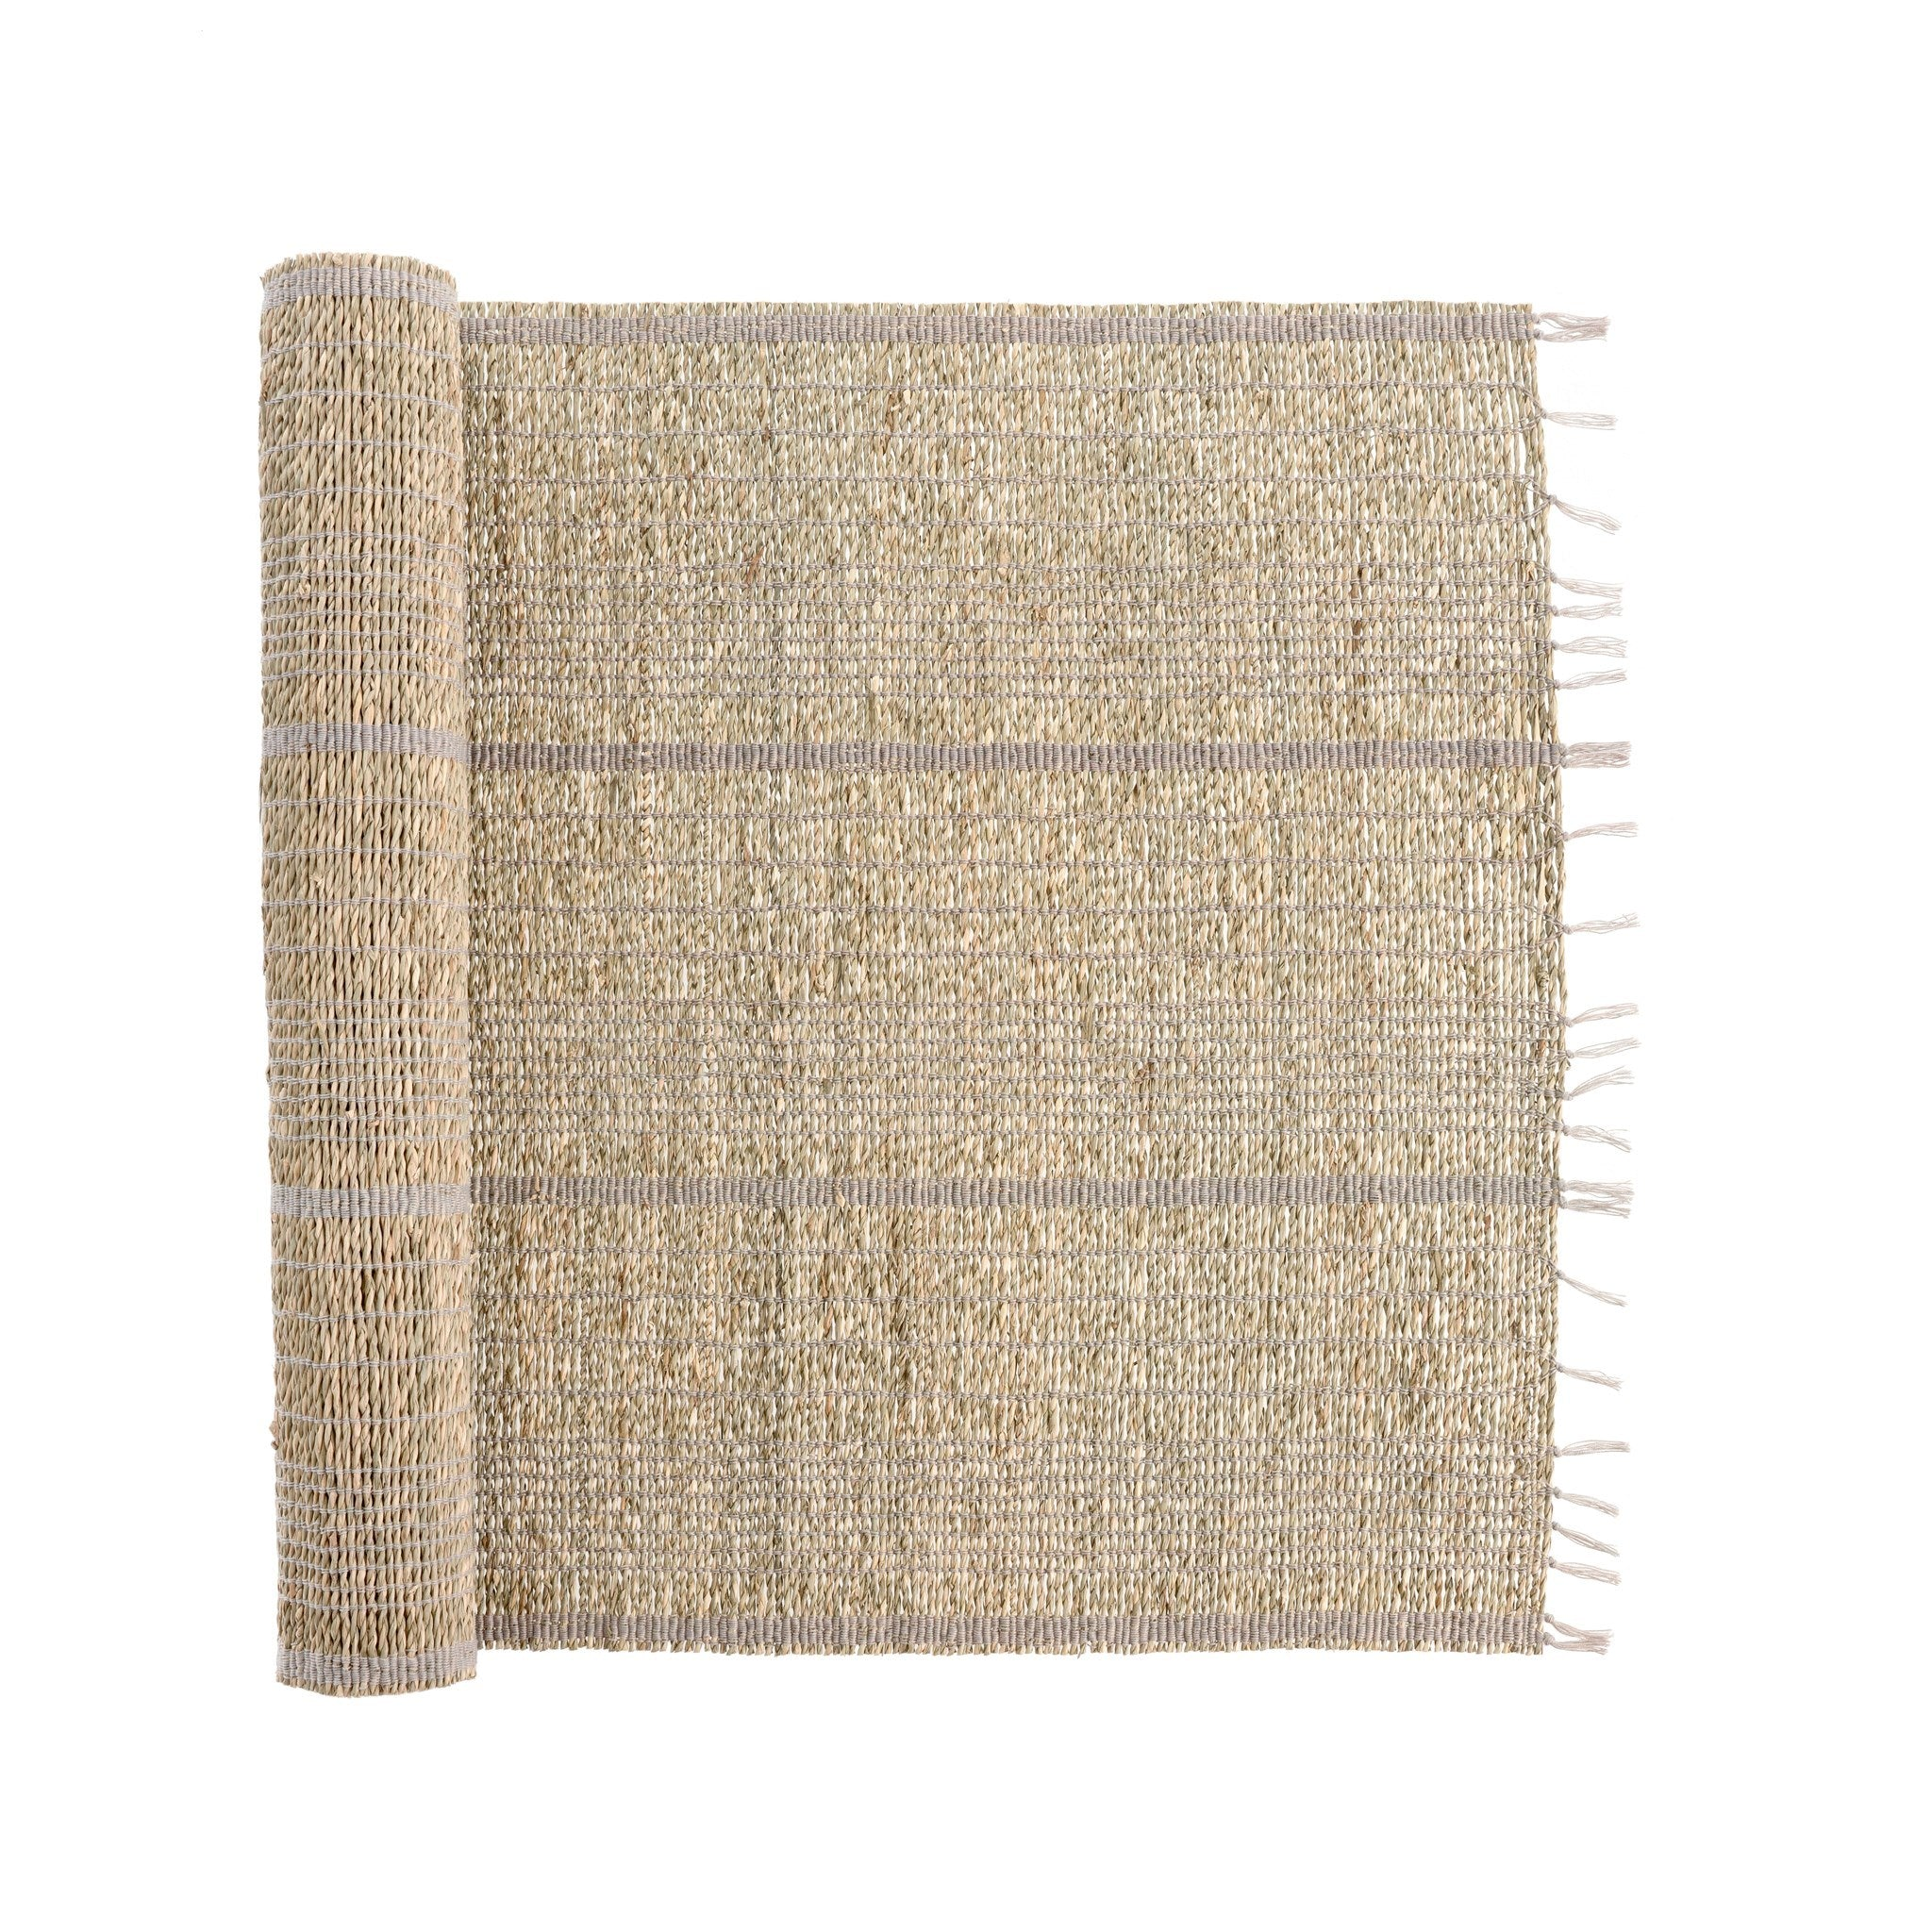 Seagrass Table Runner